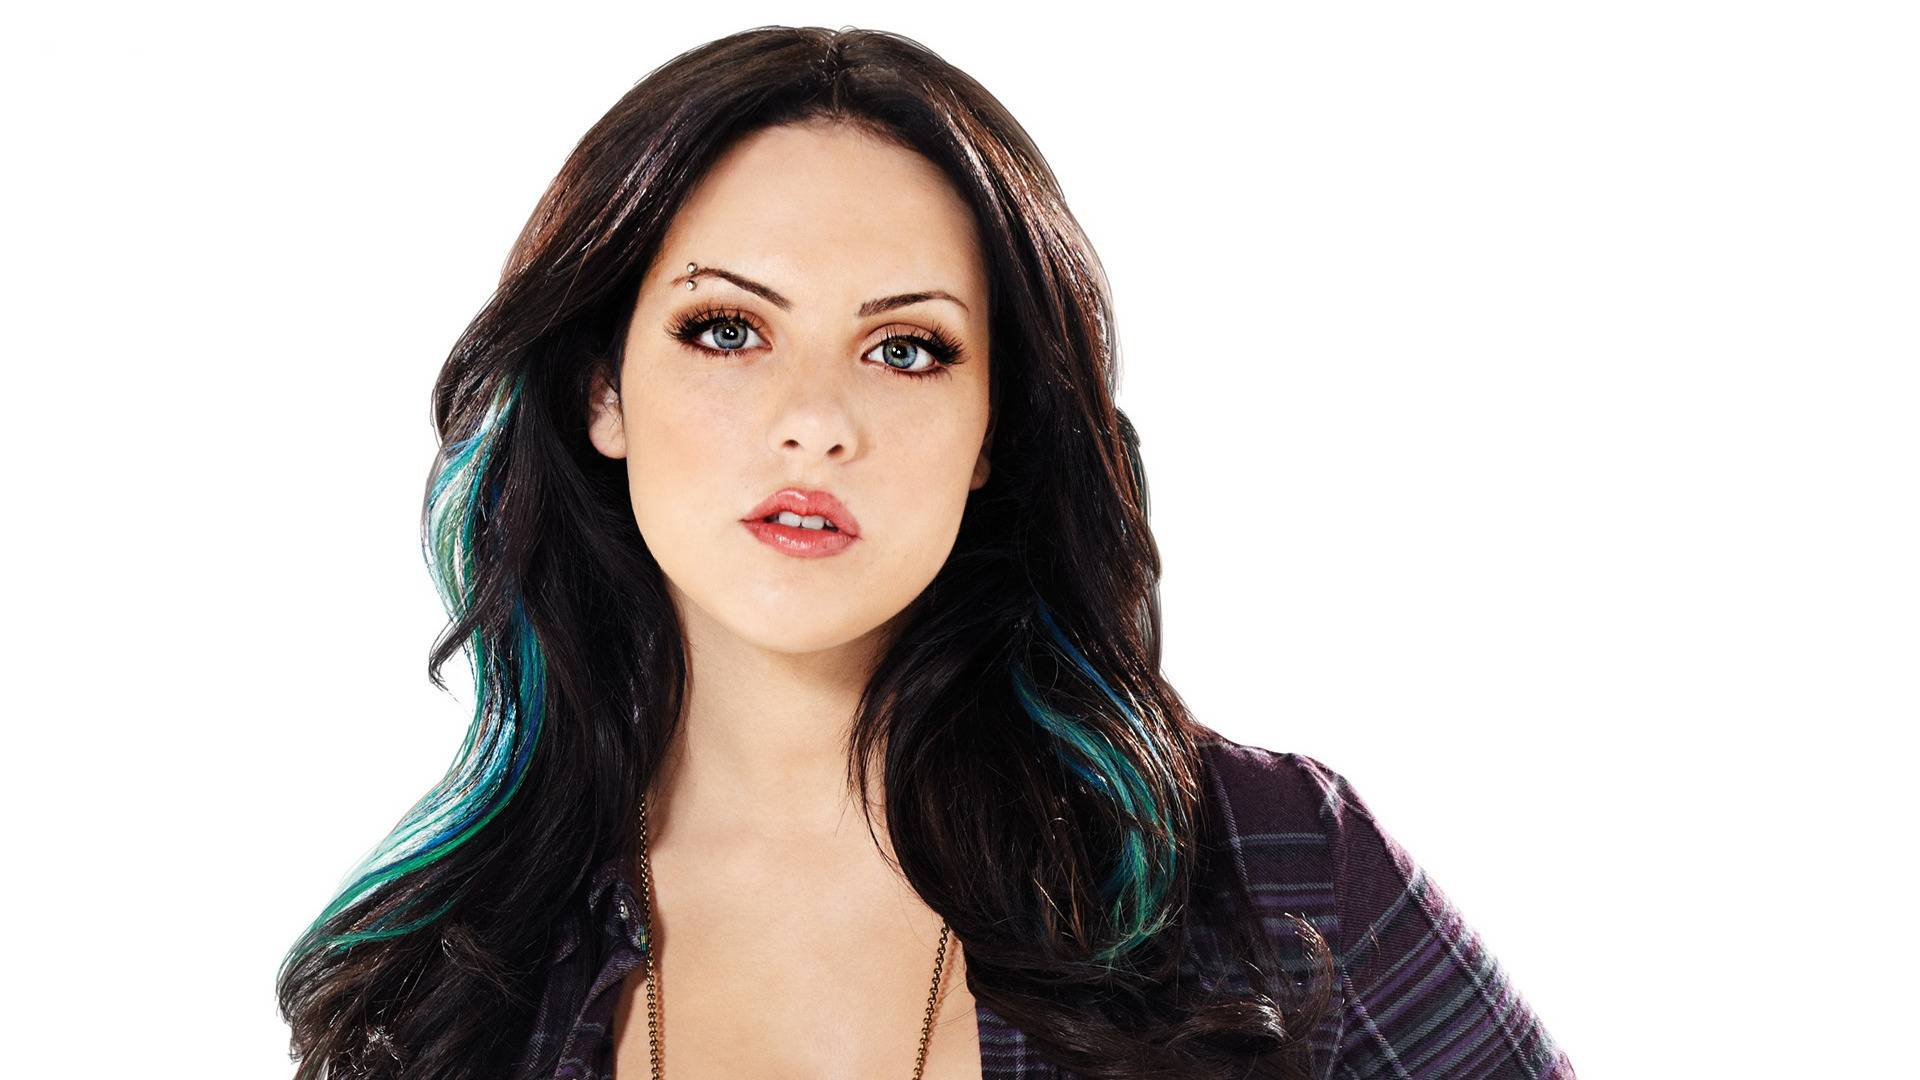 Elizabeth Gillies 5 wallpaper